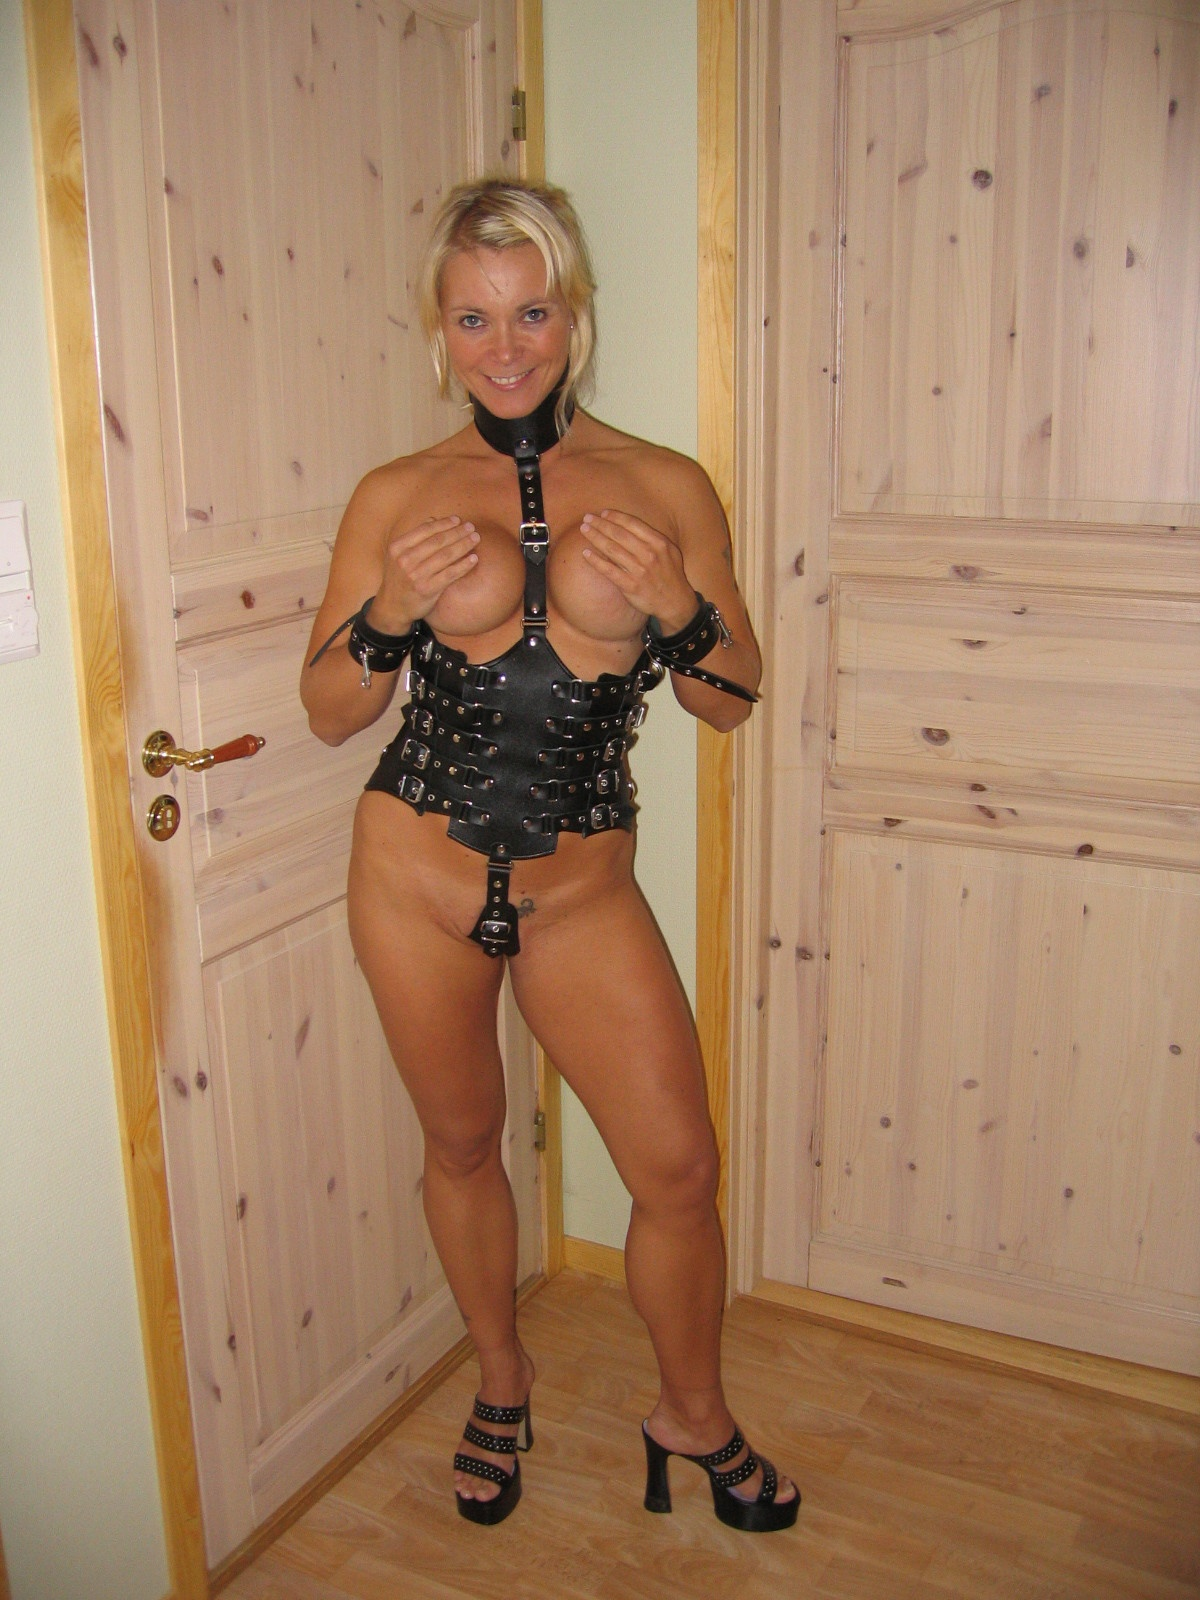 norwegian-girl-nude-photo